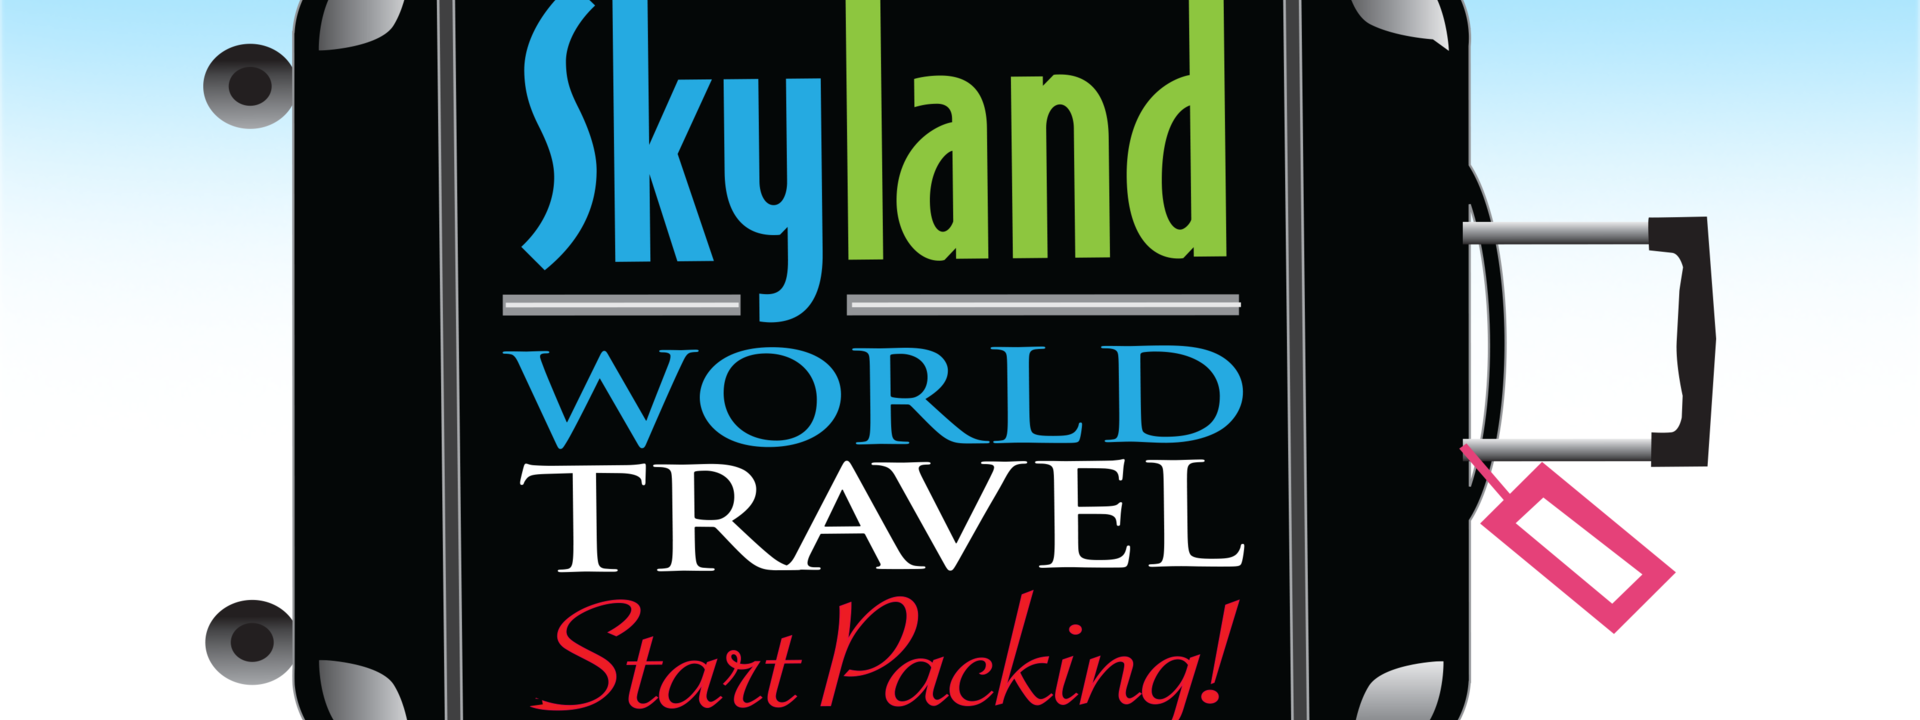 Logo: Skyland World Travel